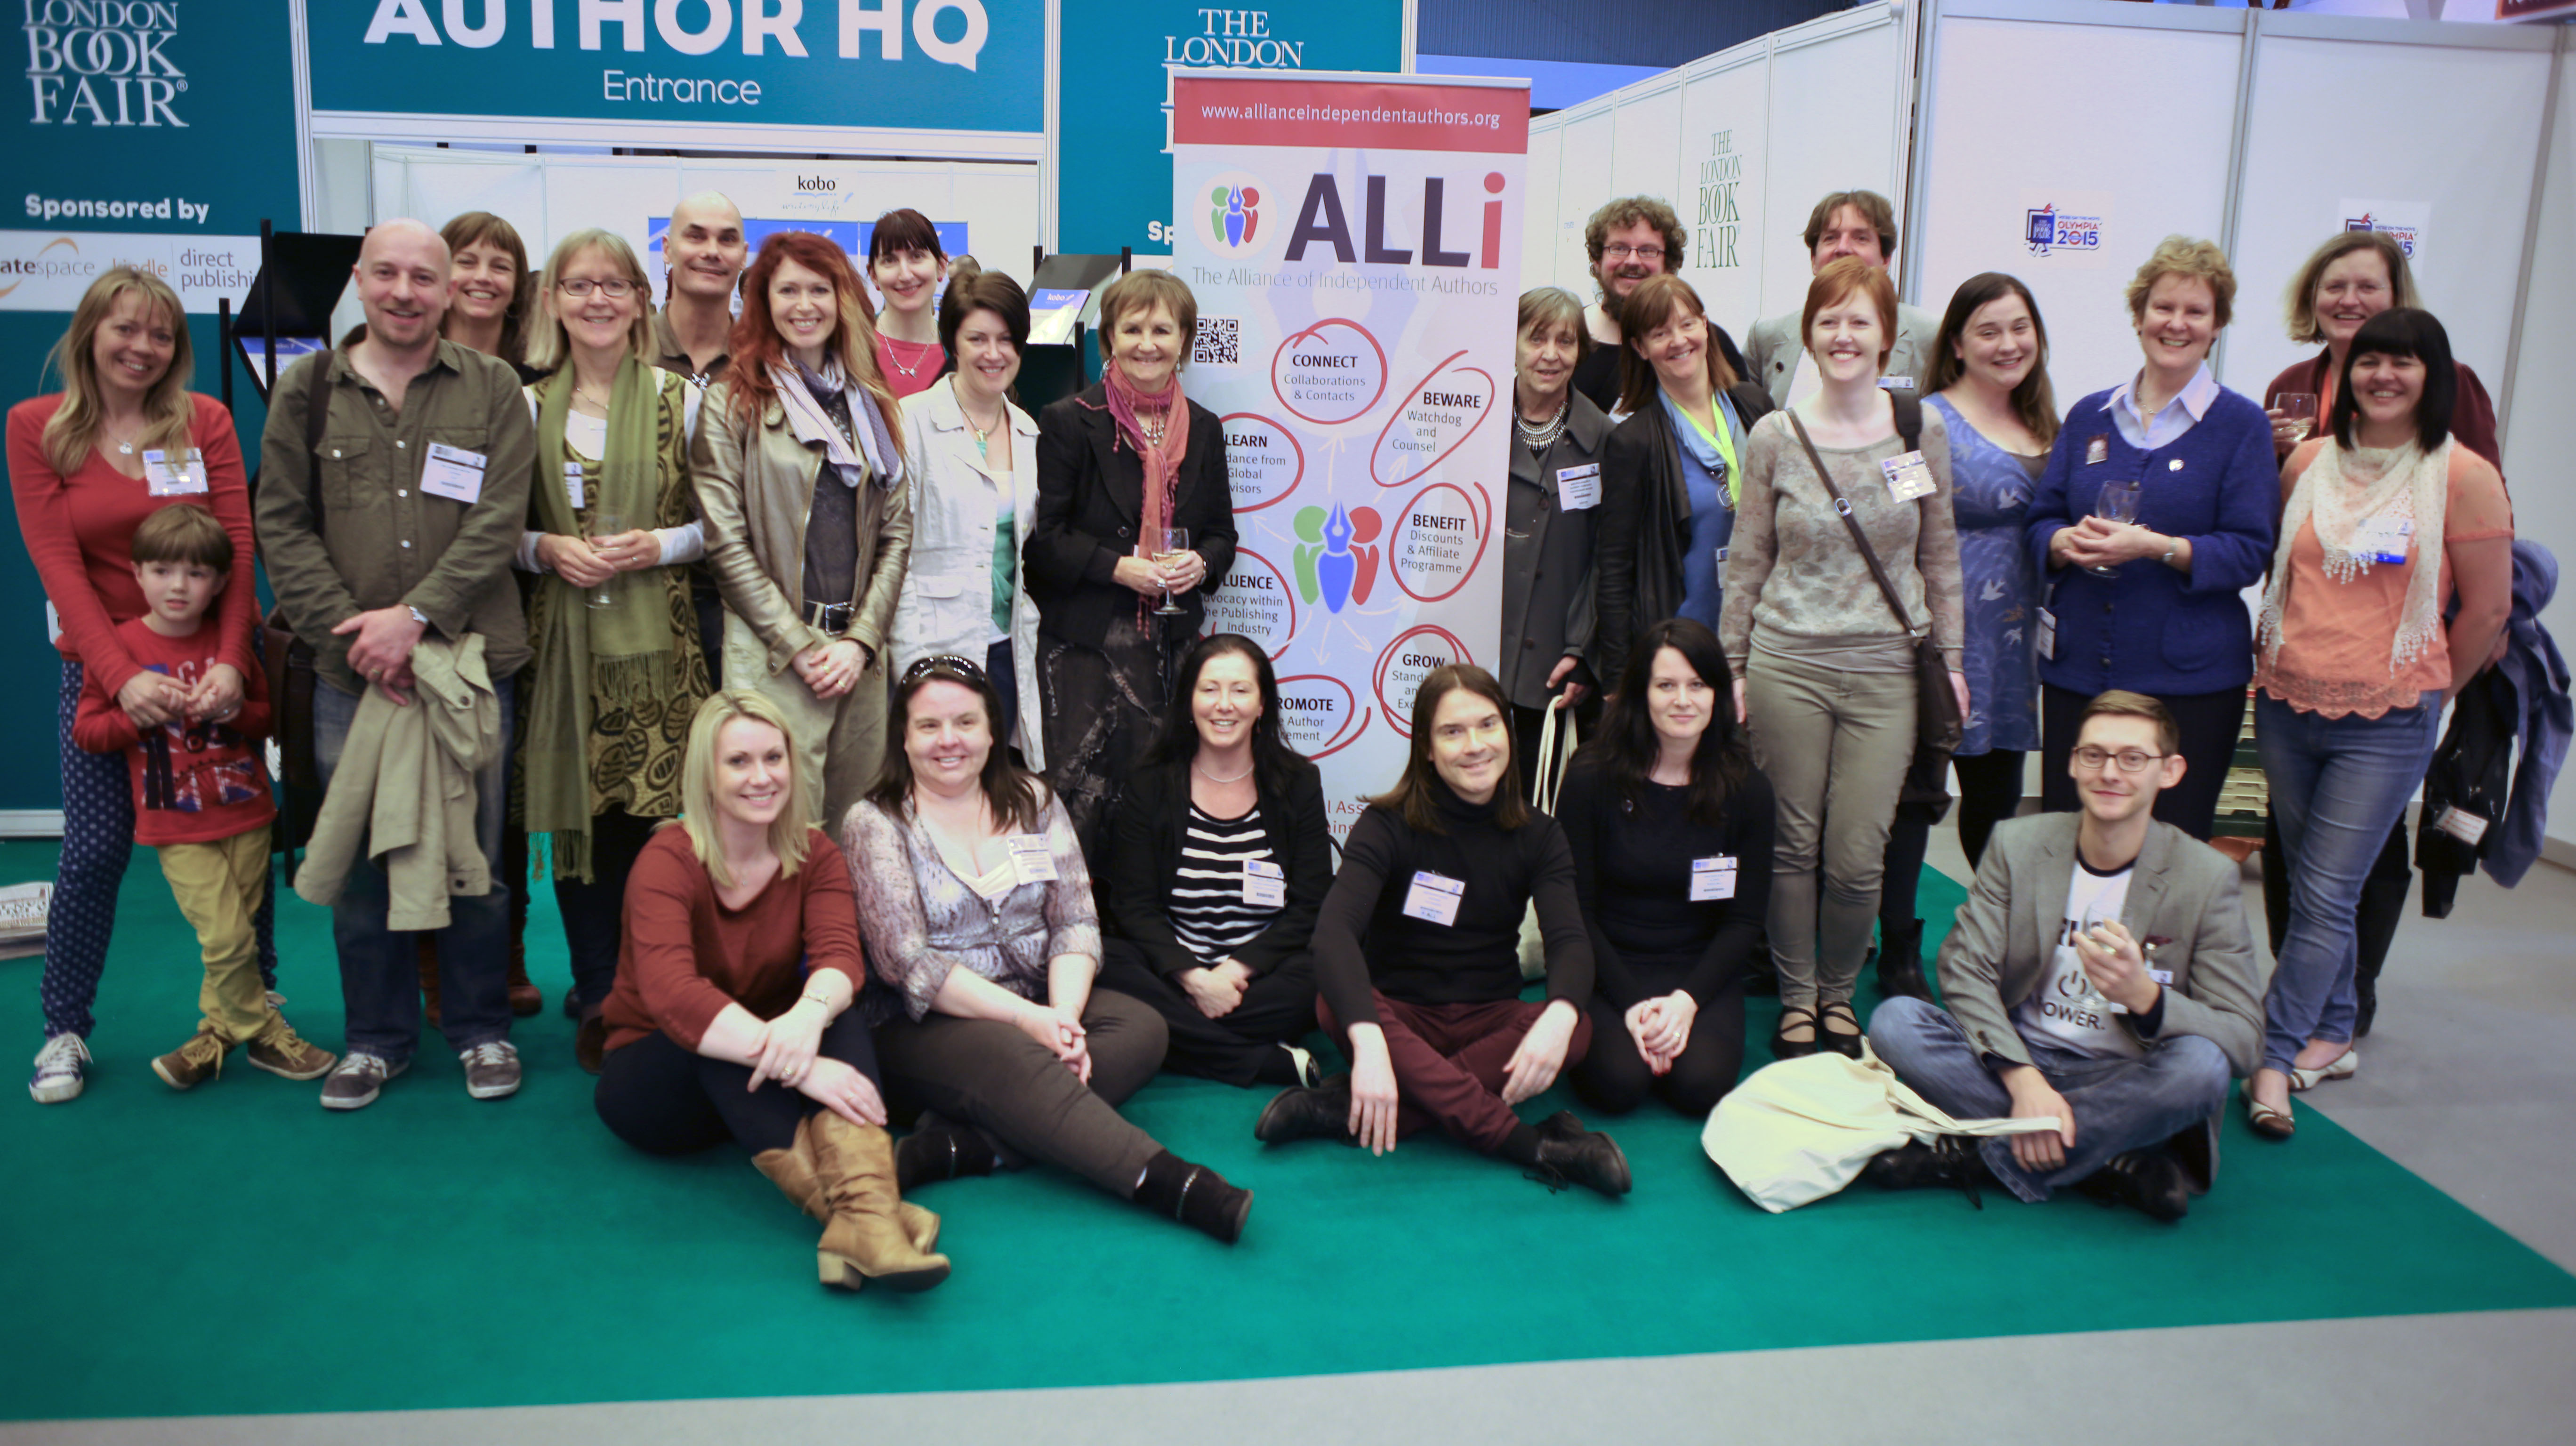 ALLiance of Independent Authors members at The London Book Fair